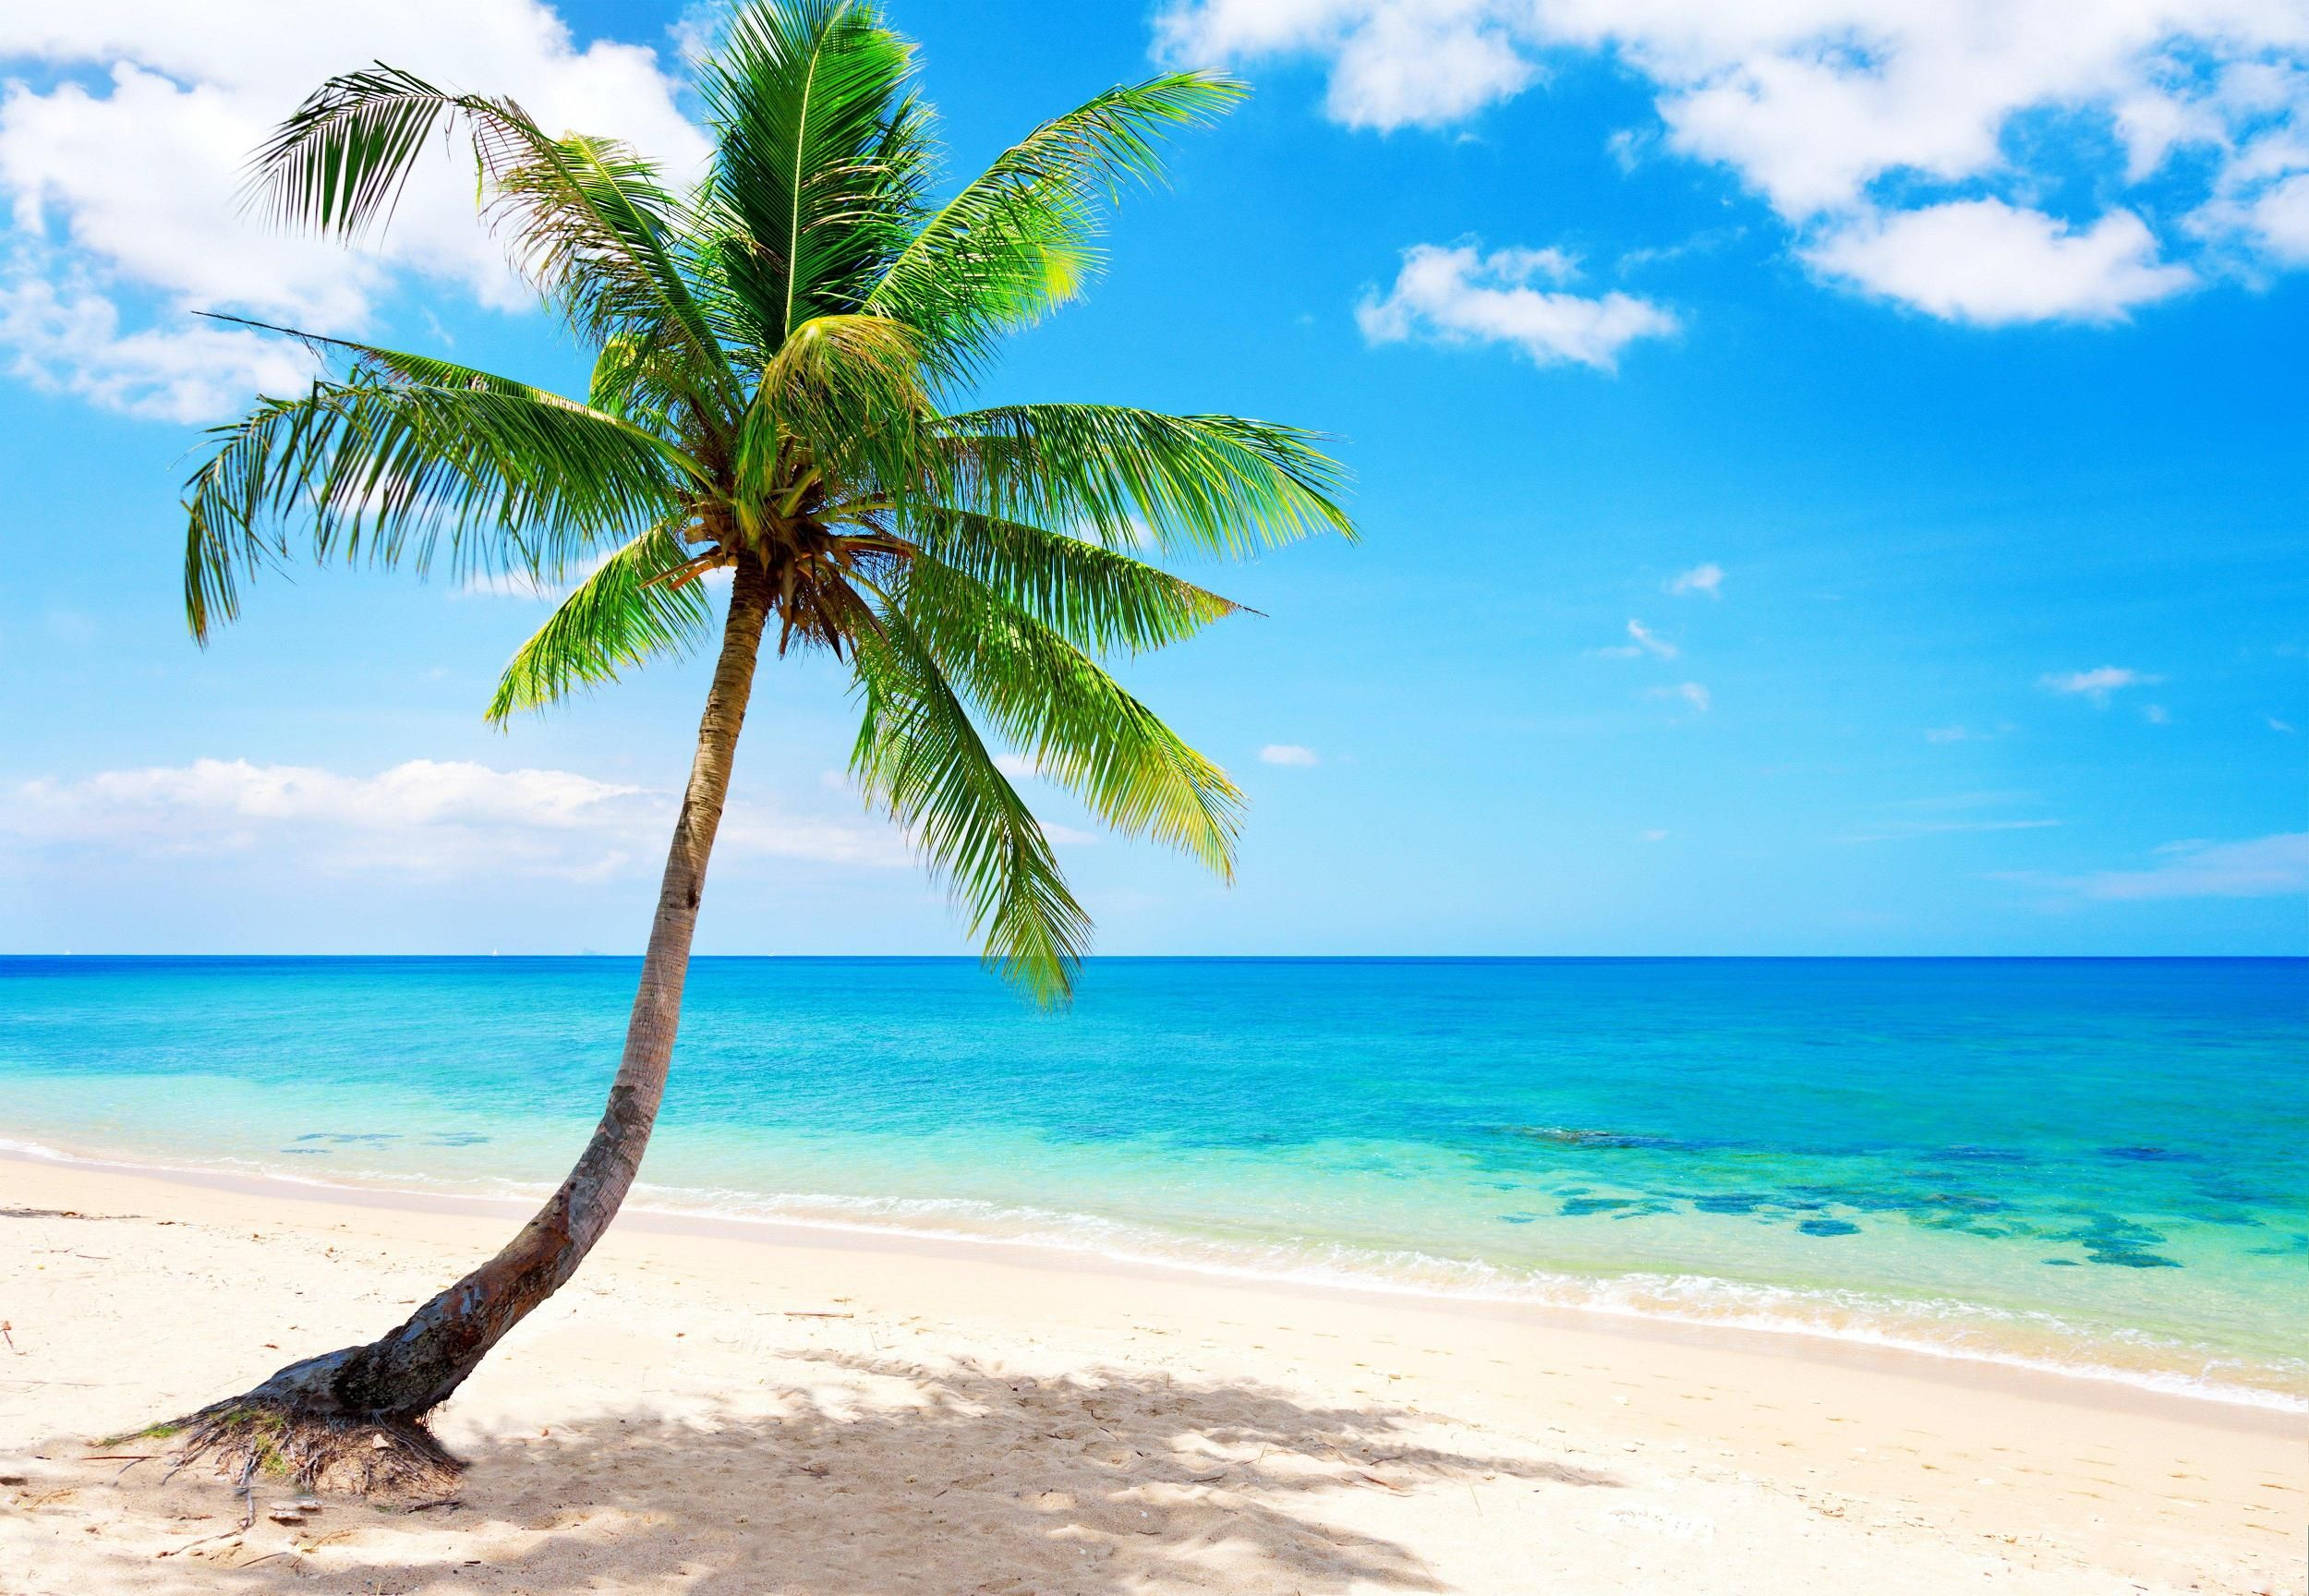 Tropical Beaches With Palm Trees S Wallpapers Photo Jllsly Beach Wallpaper Beach Wall Decals Palm Trees Beach